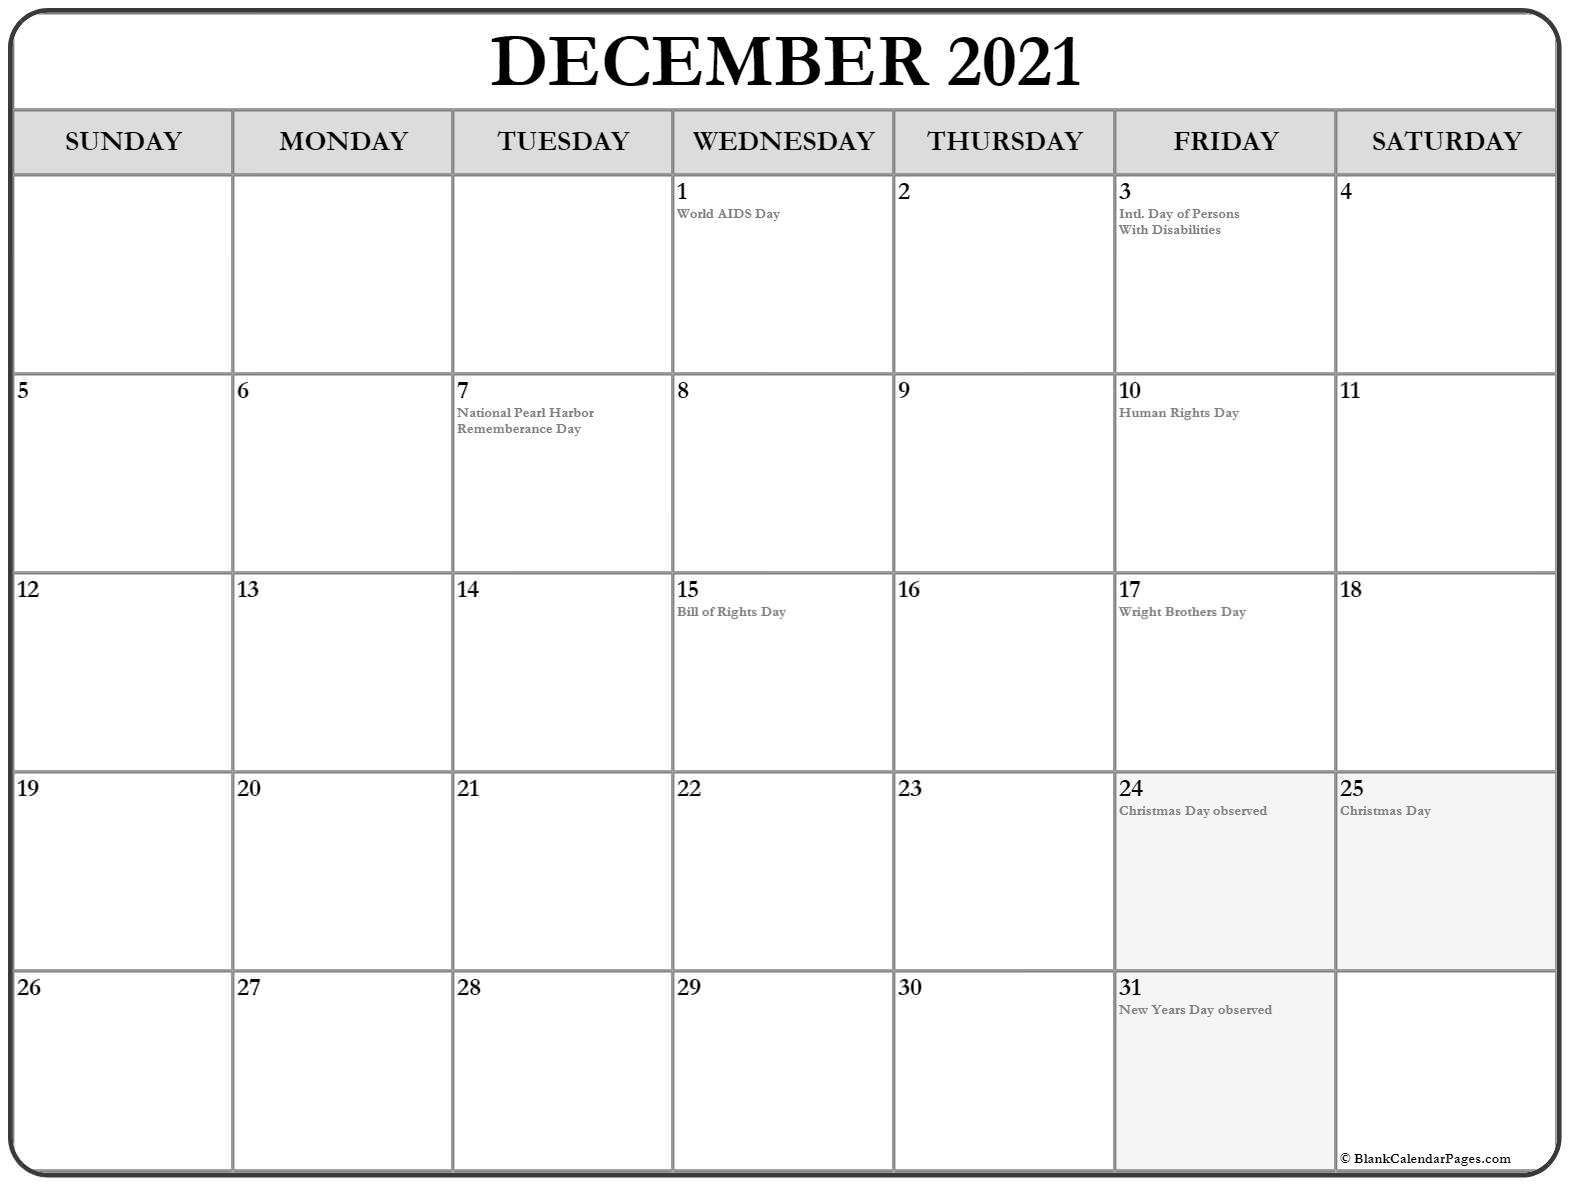 December 2018 calendar with holidays USA. Incluides US federal holidays and observations